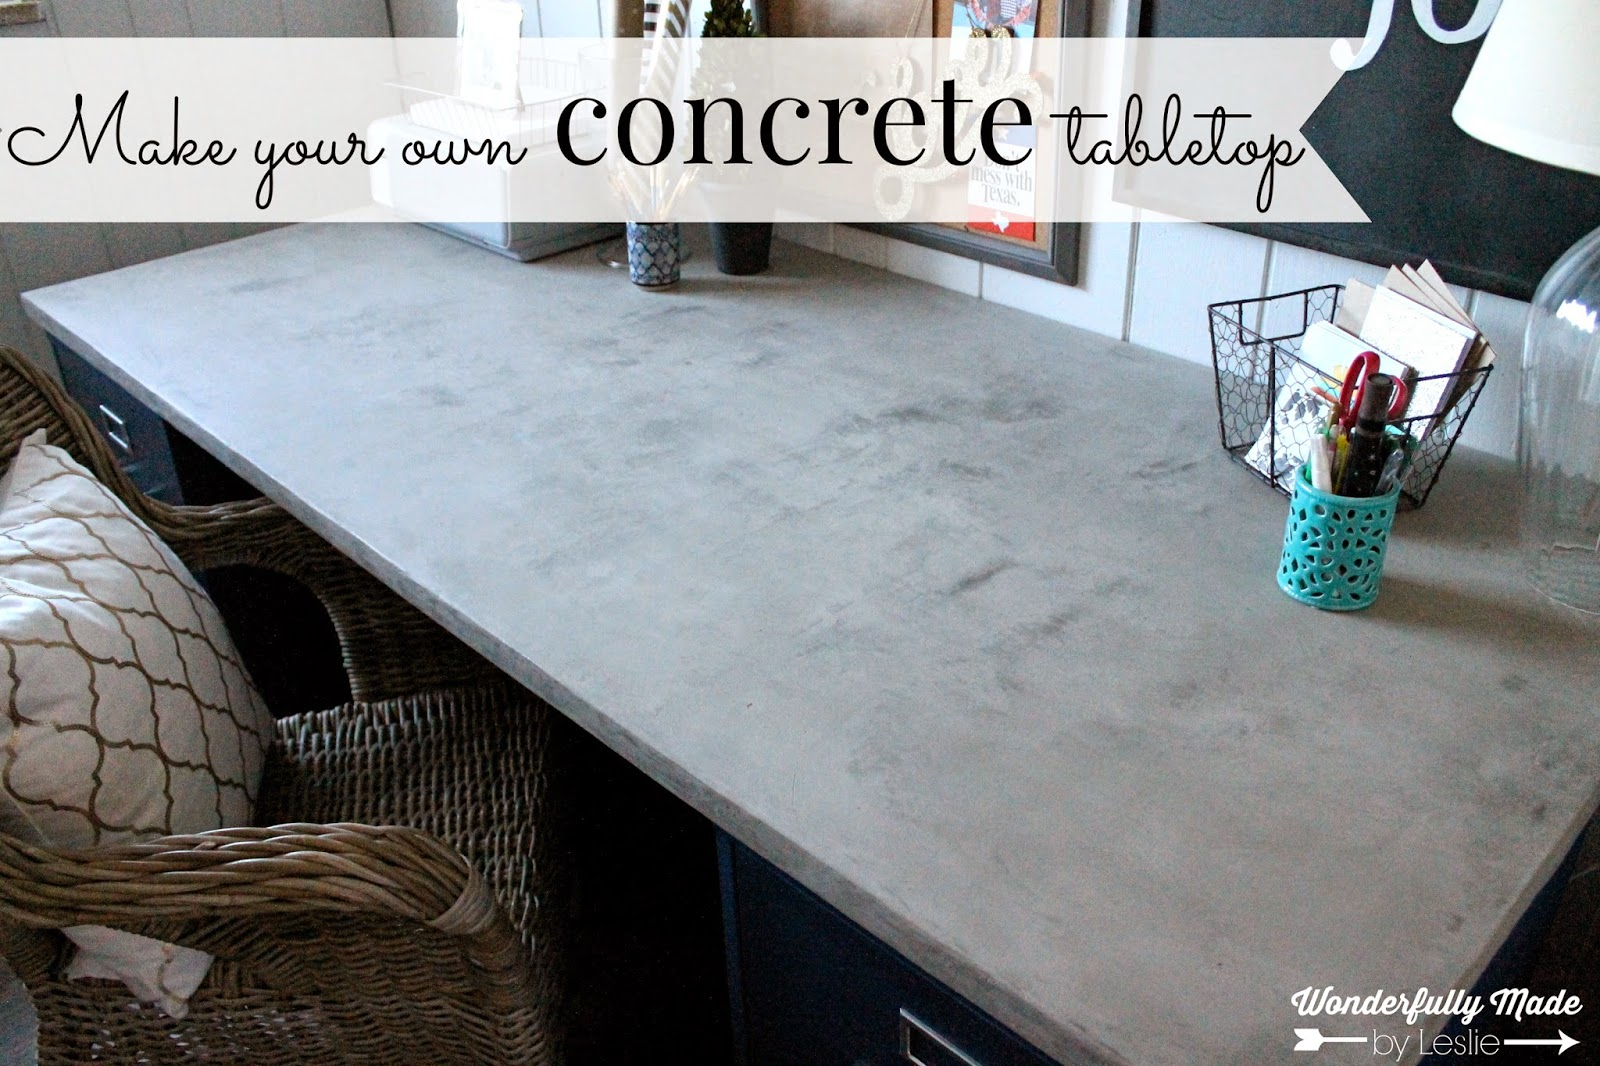 one last thing i want to mention is that the concrete has character originally i wanted an even gray finish but that is just not how this concrete works